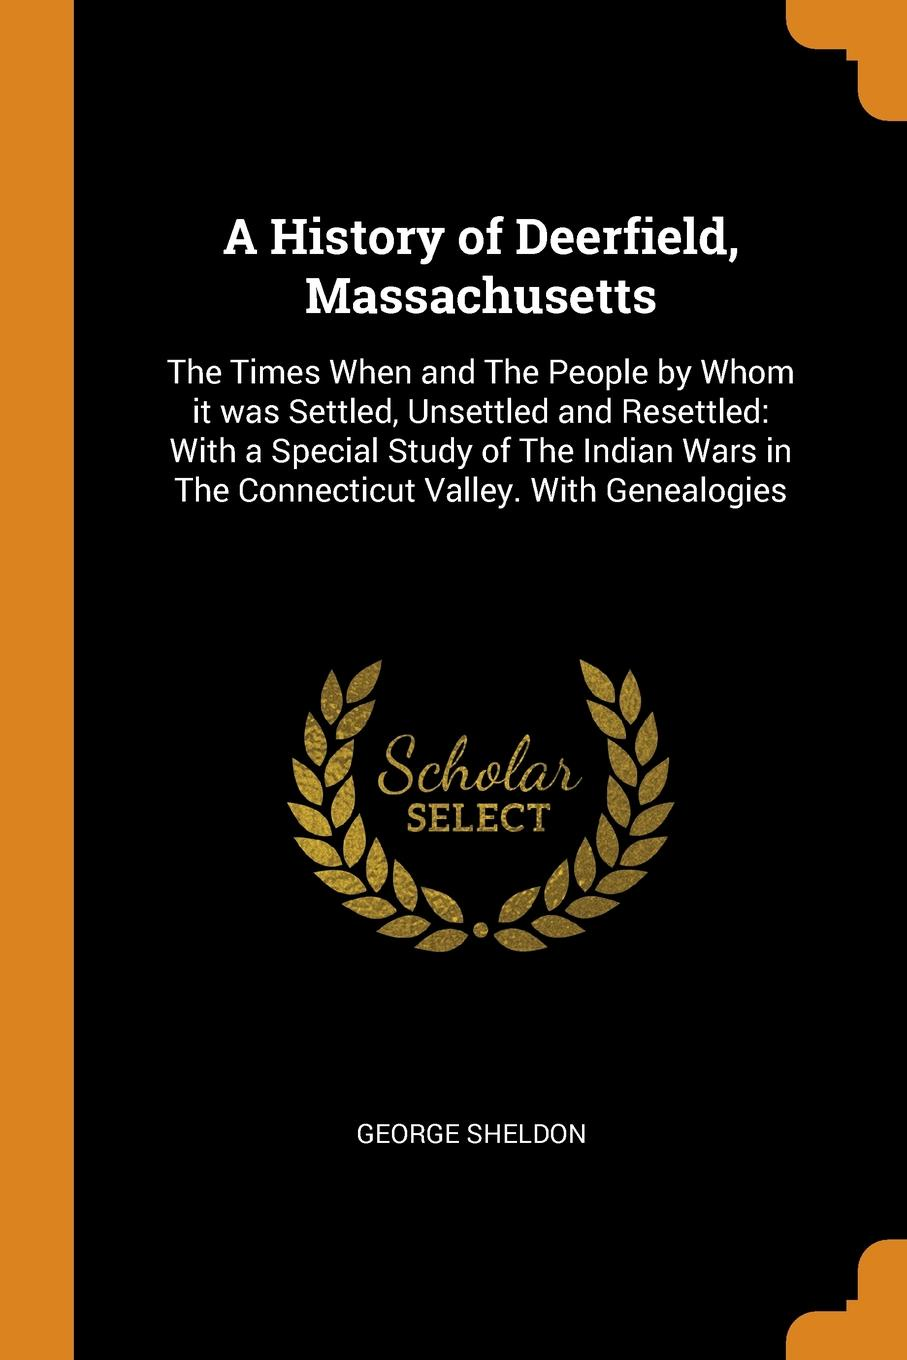 George Sheldon A History of Deerfield, Massachusetts. The Times When and The People by Whom it was Settled, Unsettled and Resettled: With a Special Study of The Indian Wars in The Connecticut Valley. With Genealogies